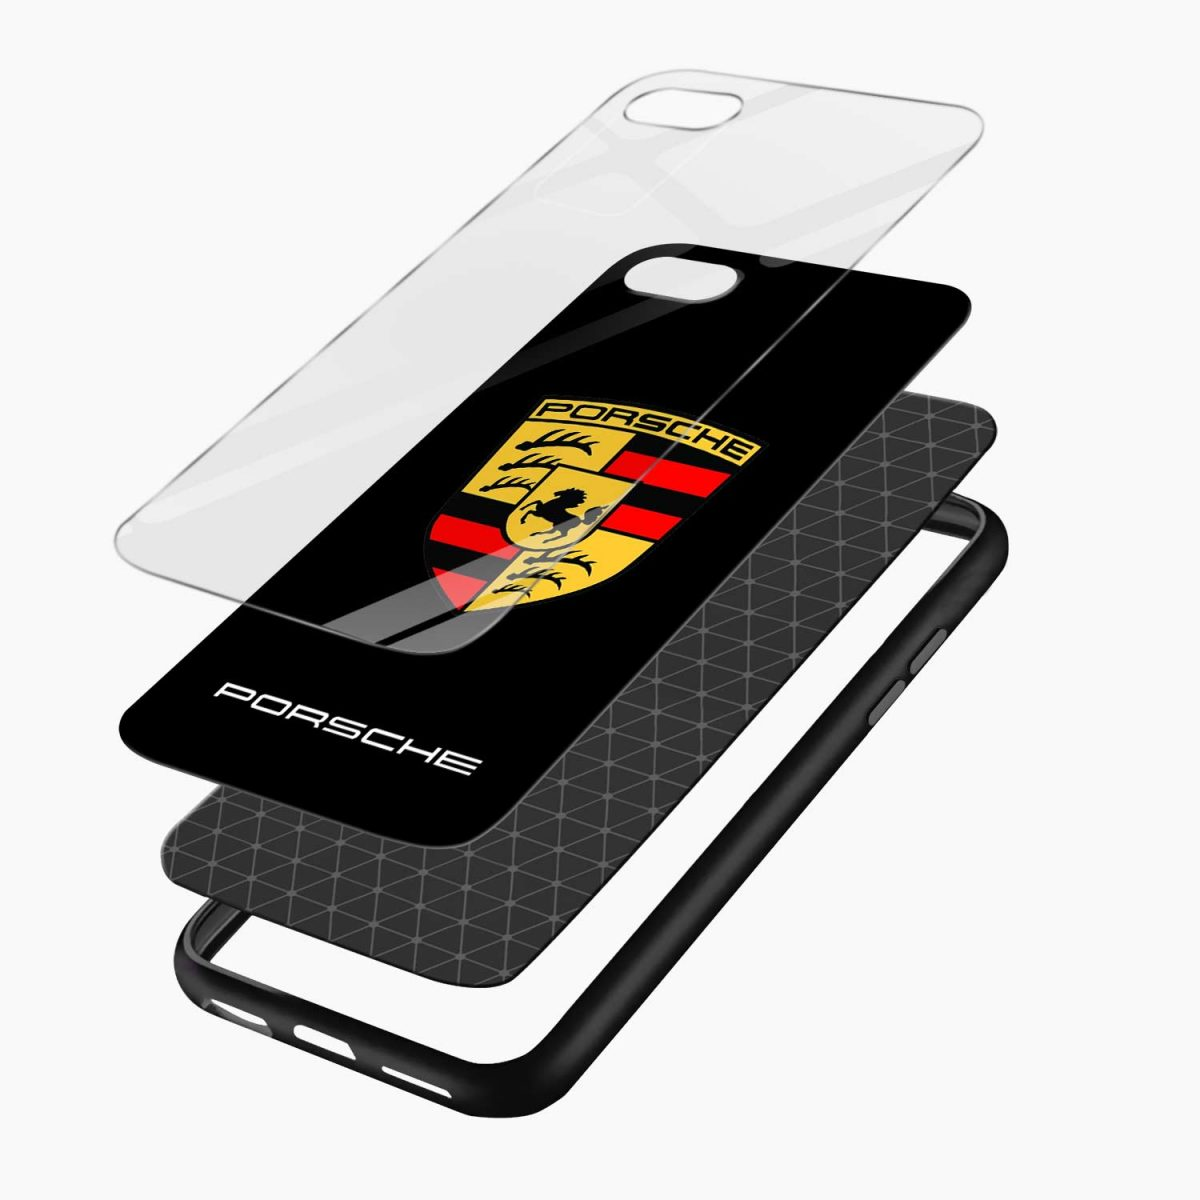 prosche layers view apple iphone 6 7 8 se back cover